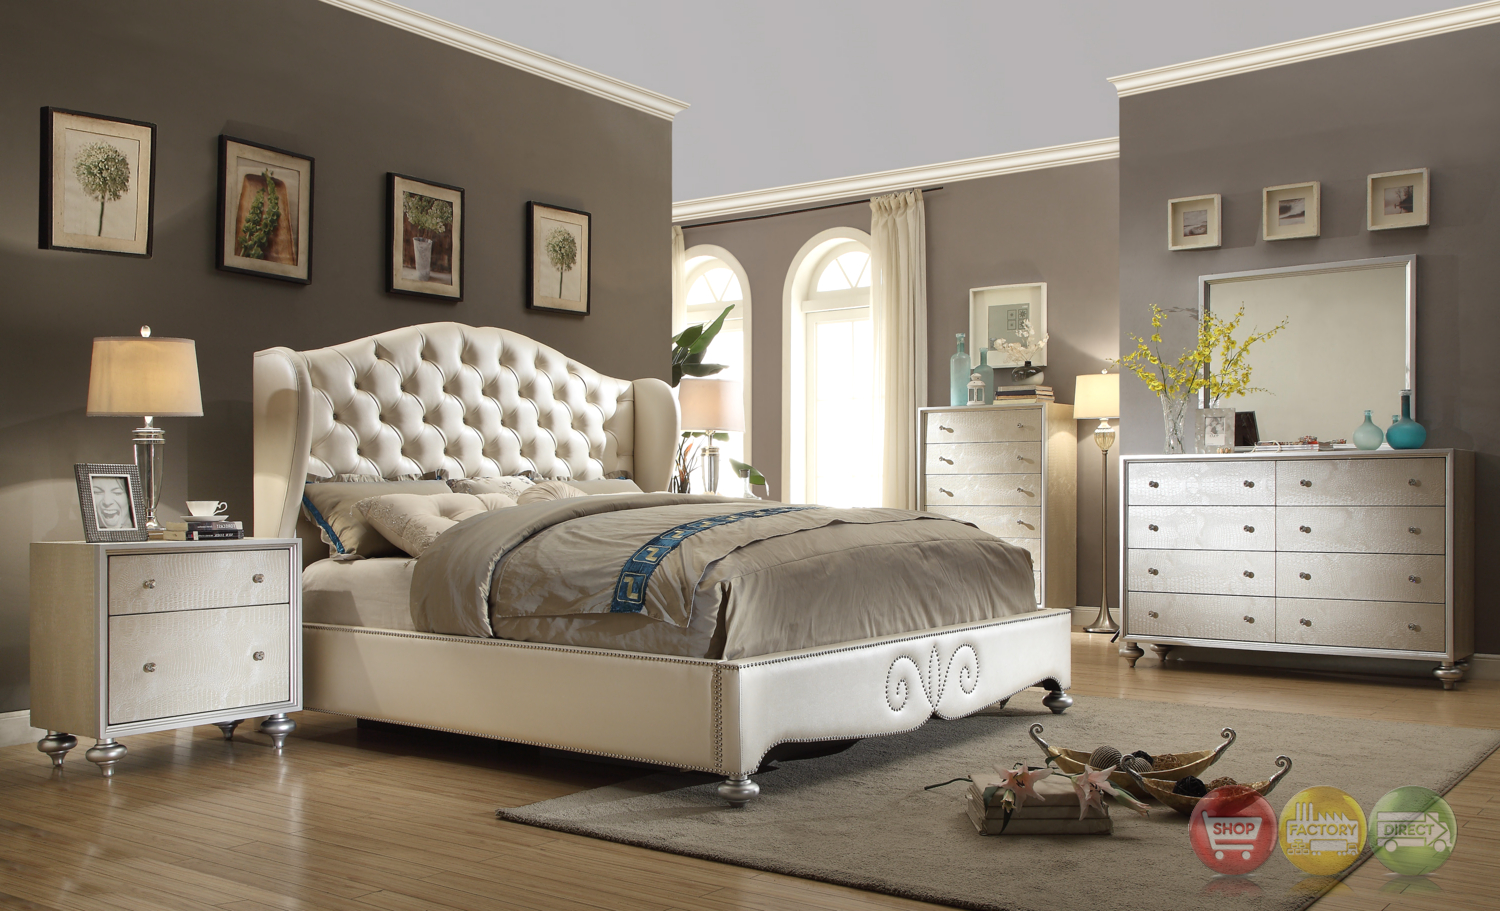 glamorous pearl white button tufted wing back bed faux croc bedroom furniture set